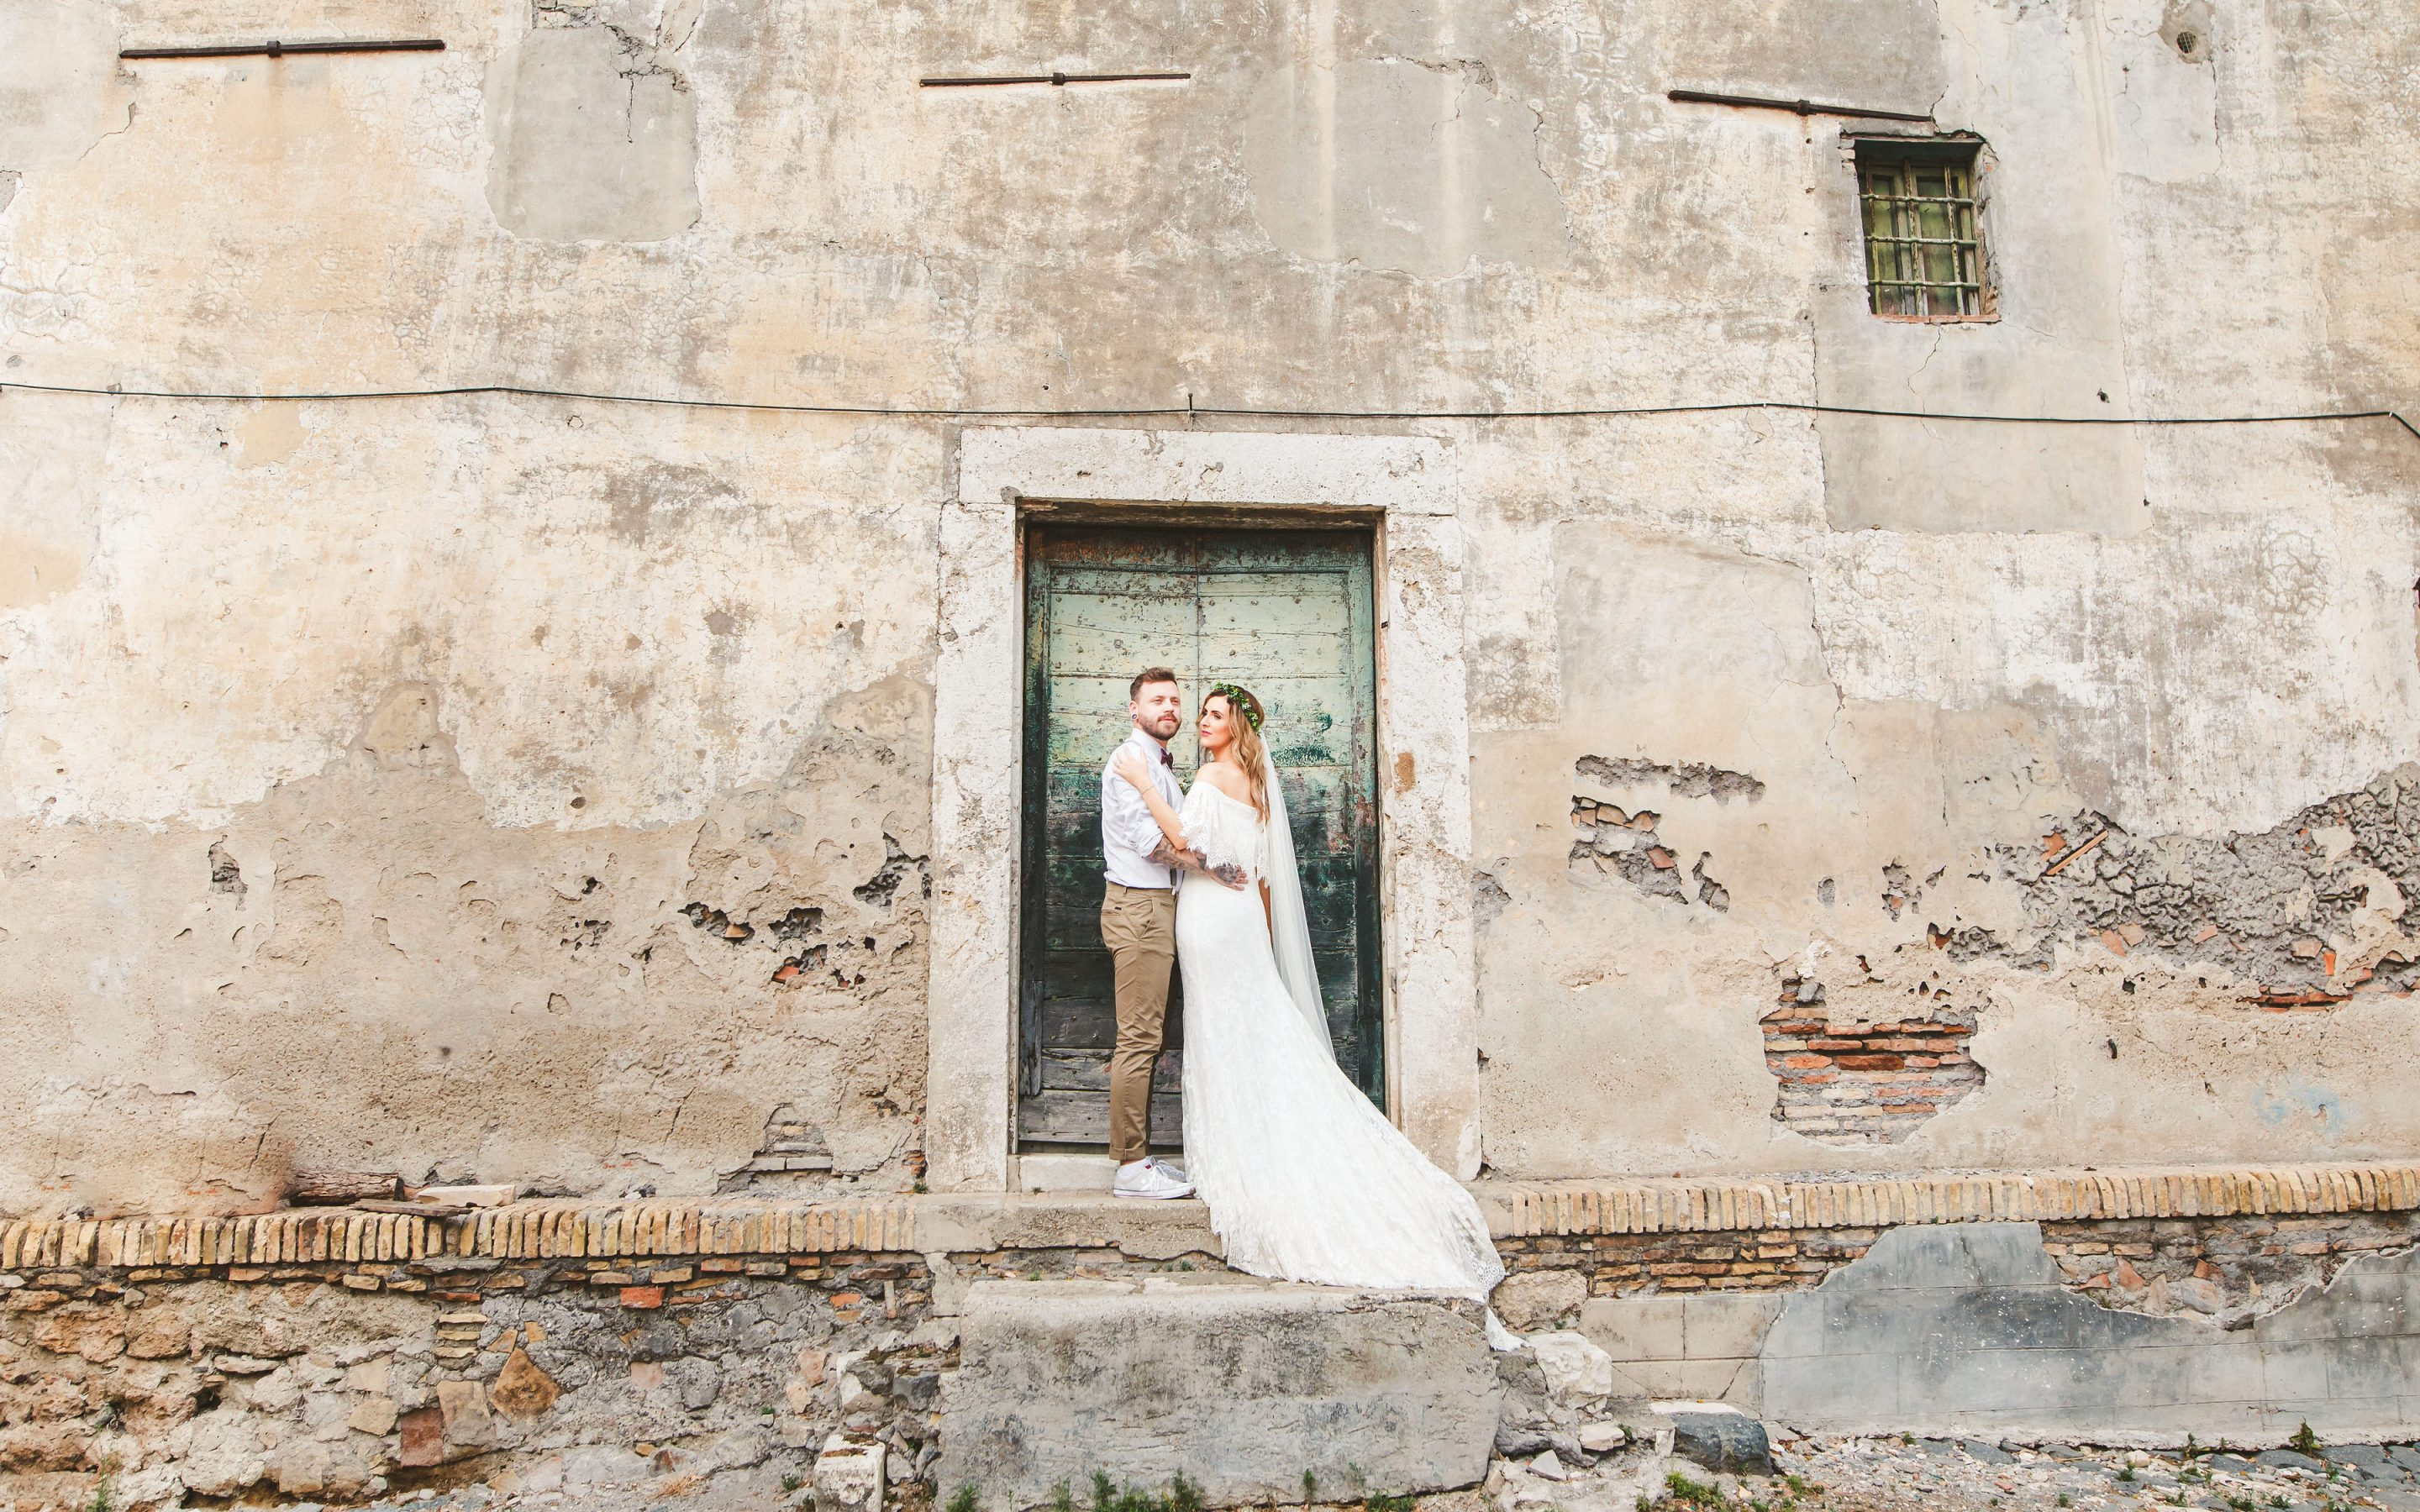 Boho wedding at Casale Doria Pamphilj